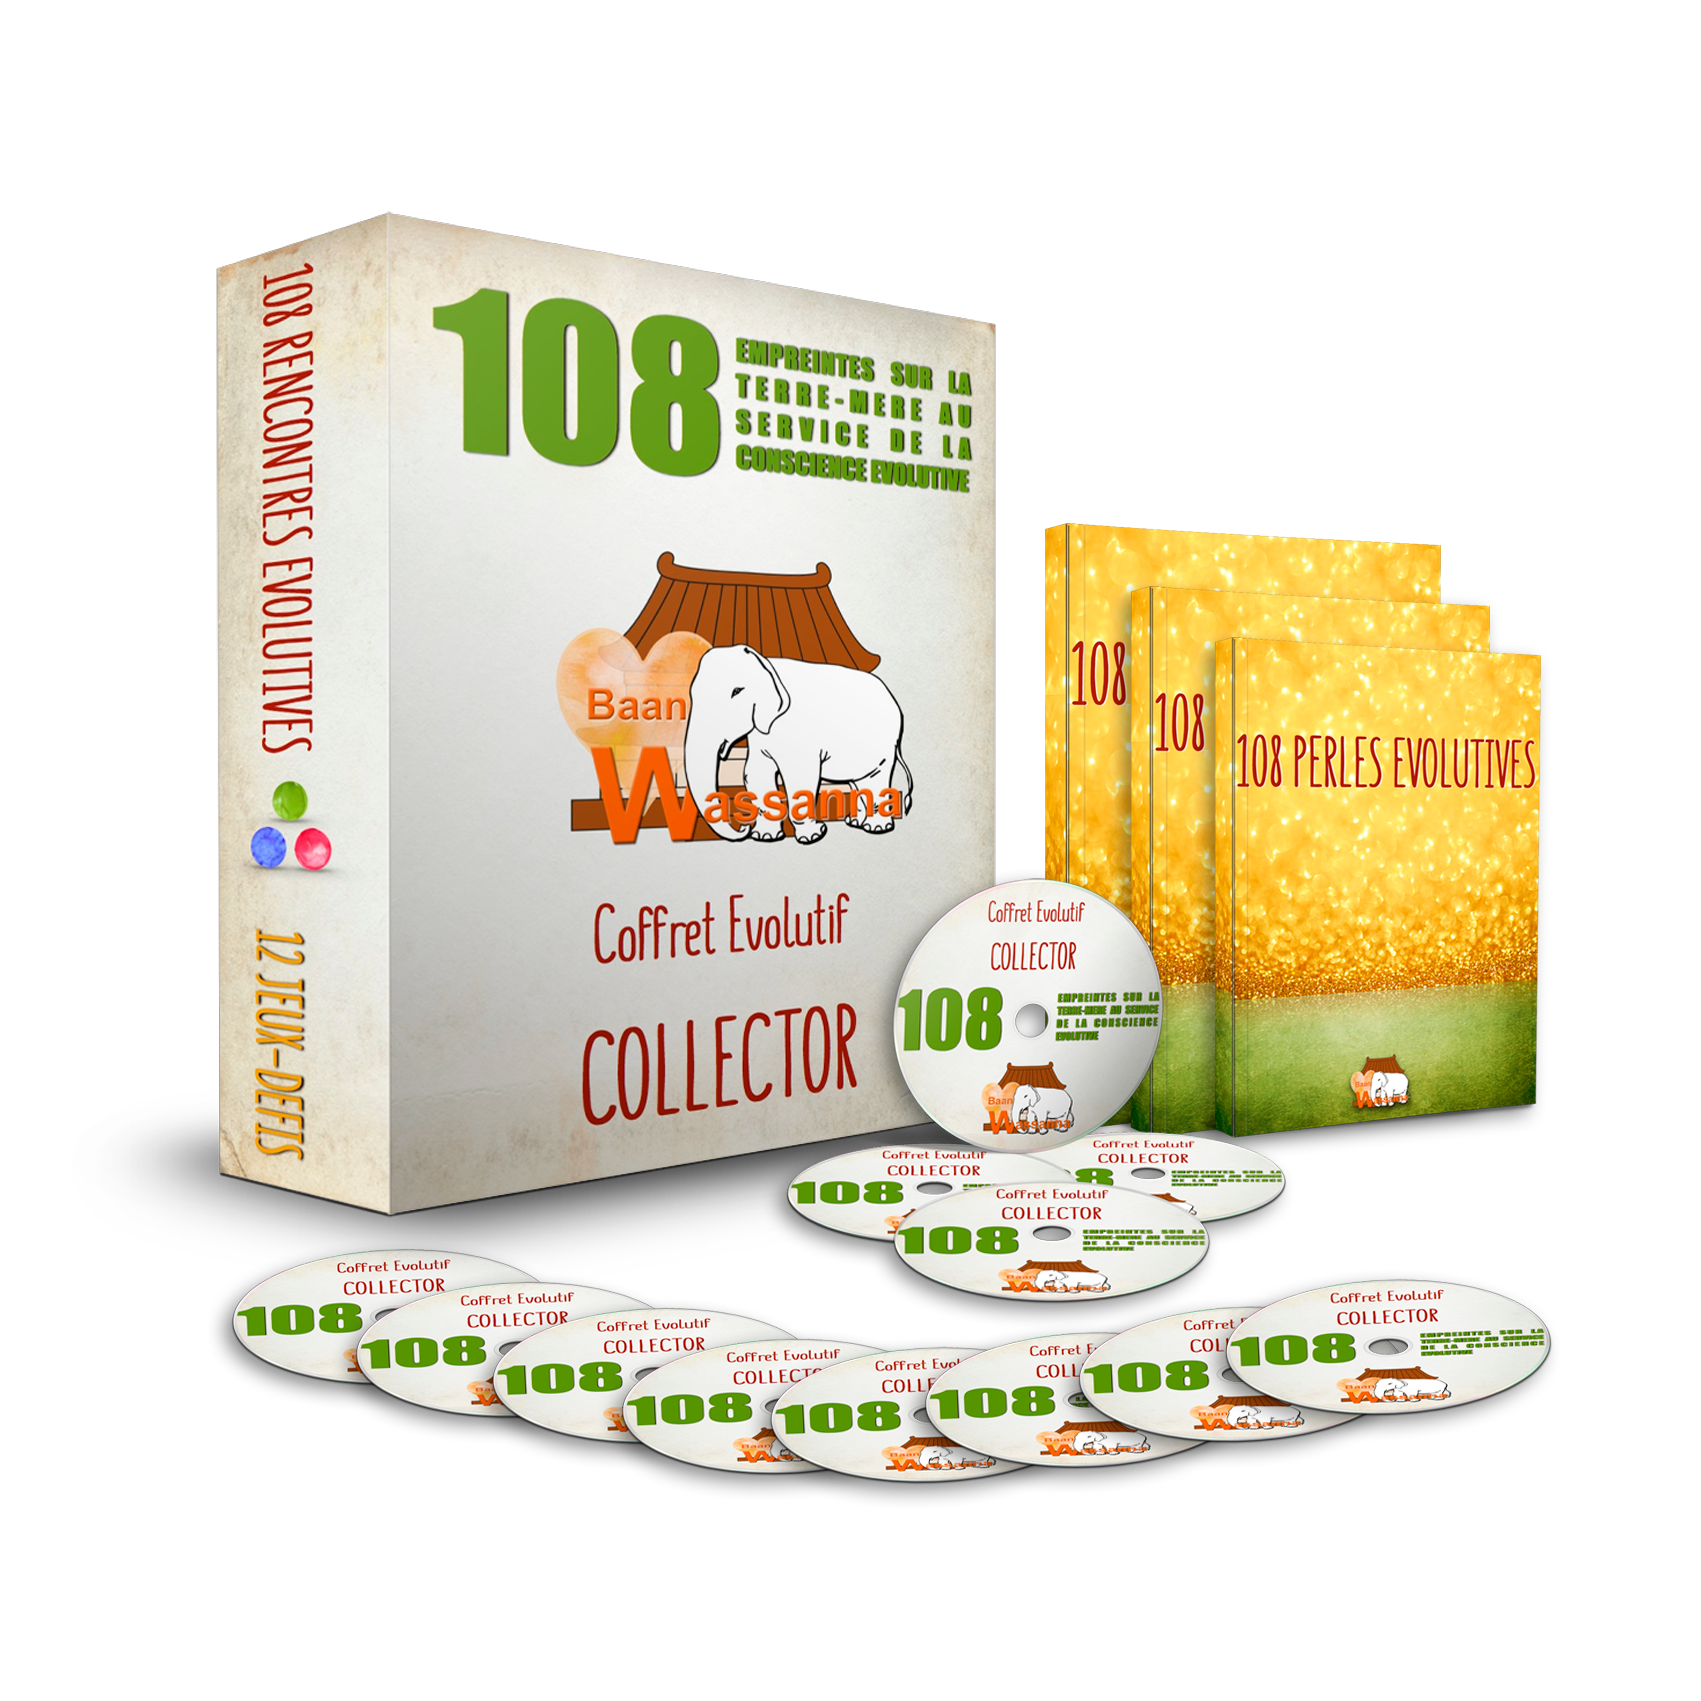 Coffret Evolutif Collector